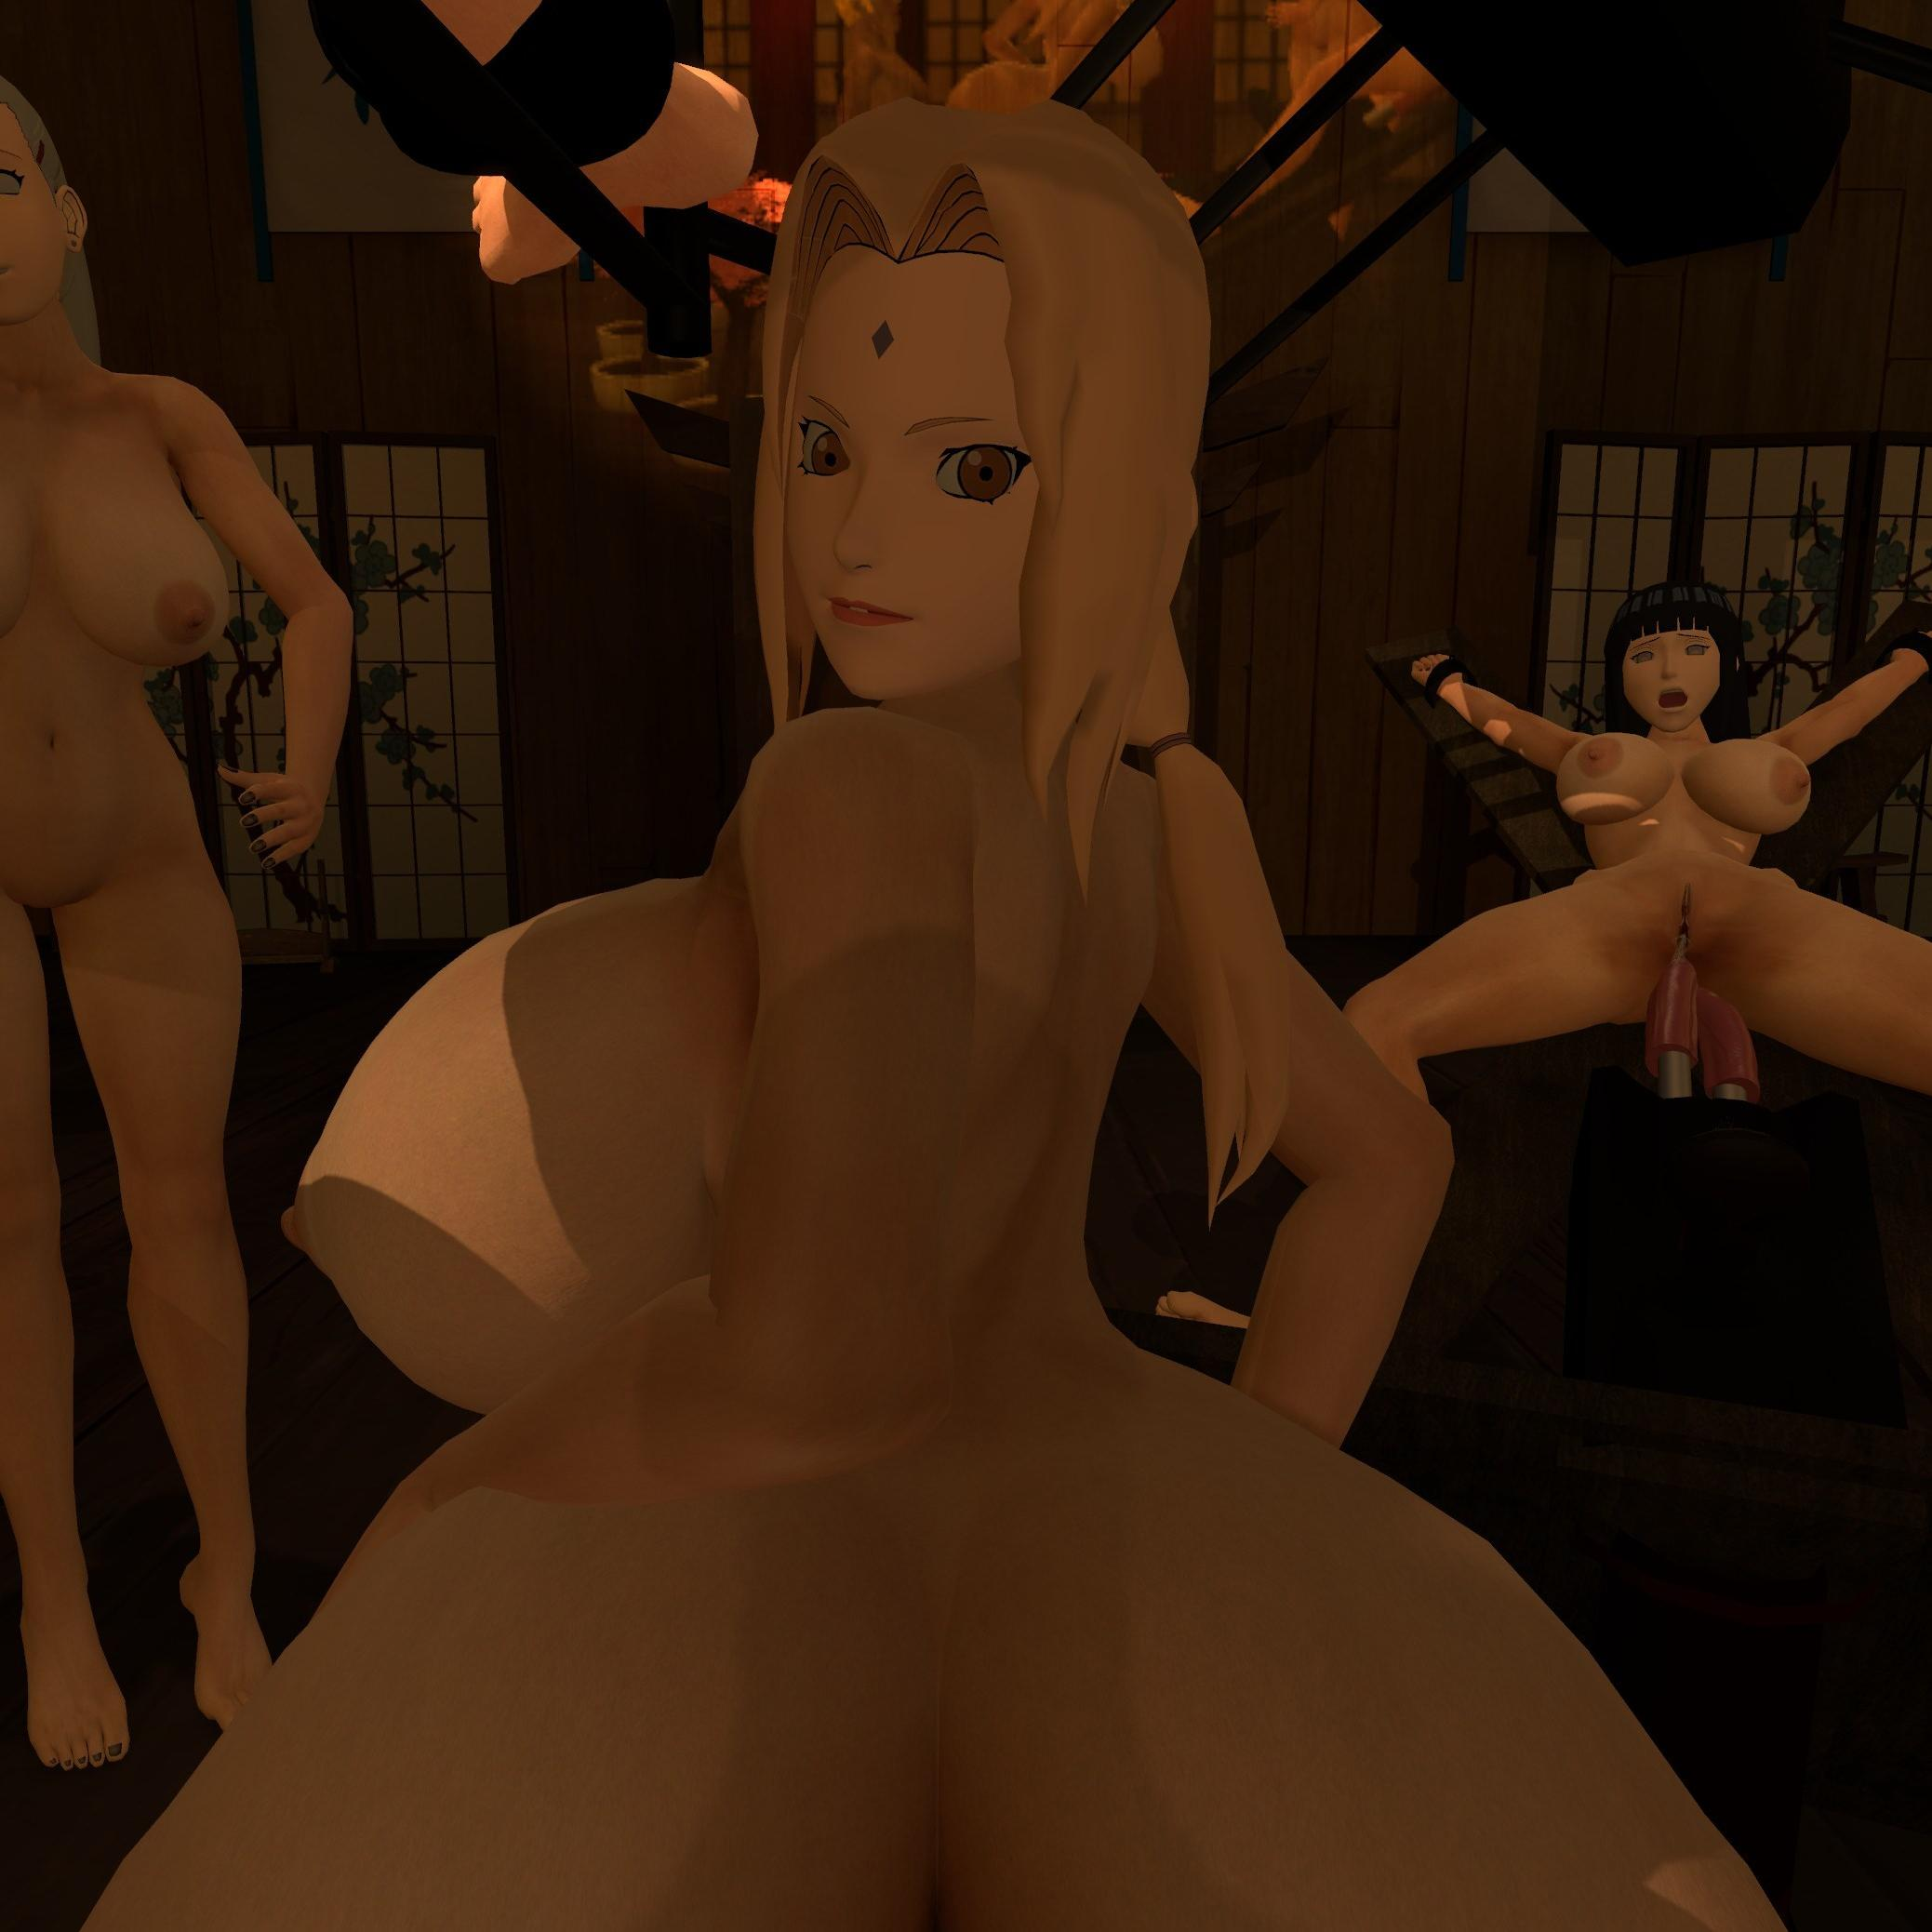 3D Cg Xxx vr video game porn videos - vrsmash